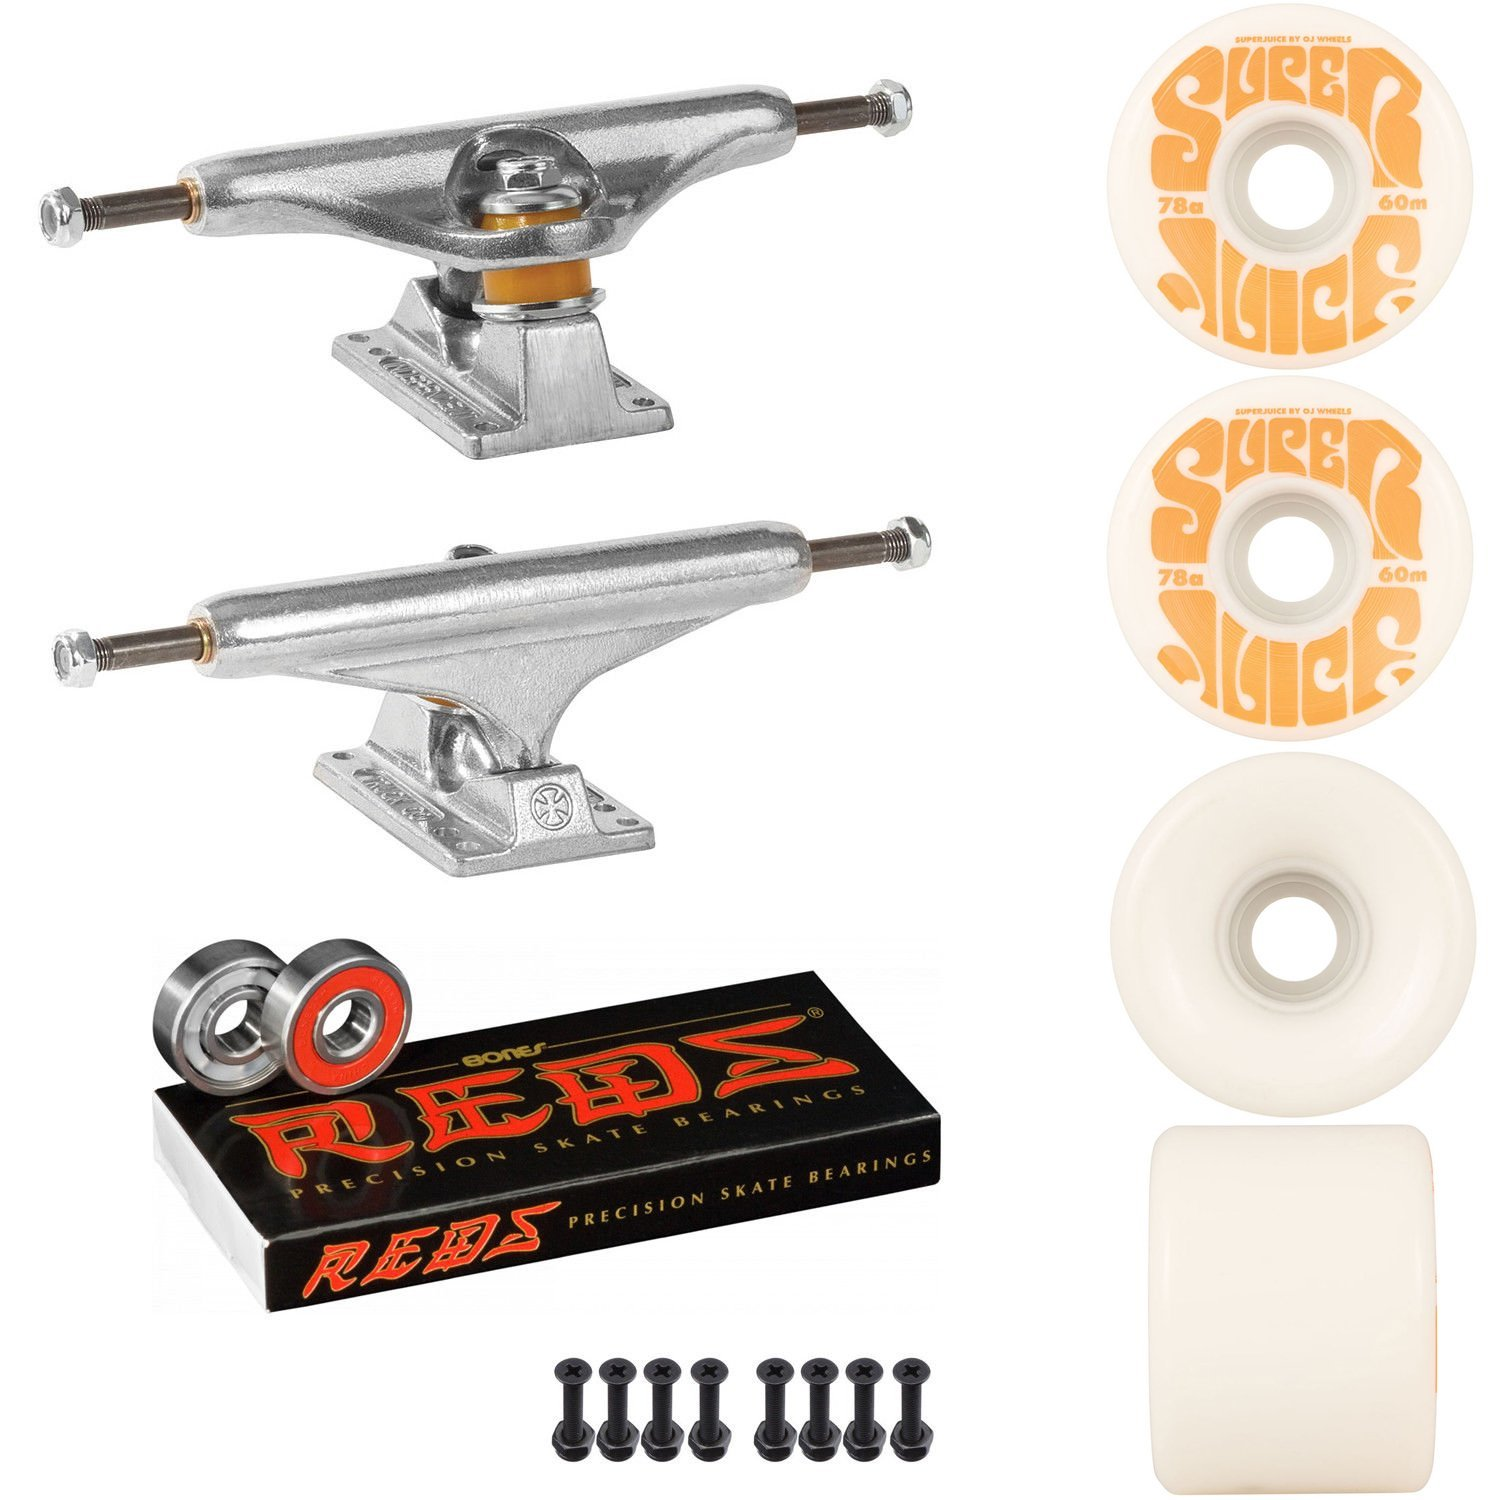 Independentスケートボードキット149 Trucks OJスーパージュース60 mm 78 aホイールホワイトReds B07DHVWCK2